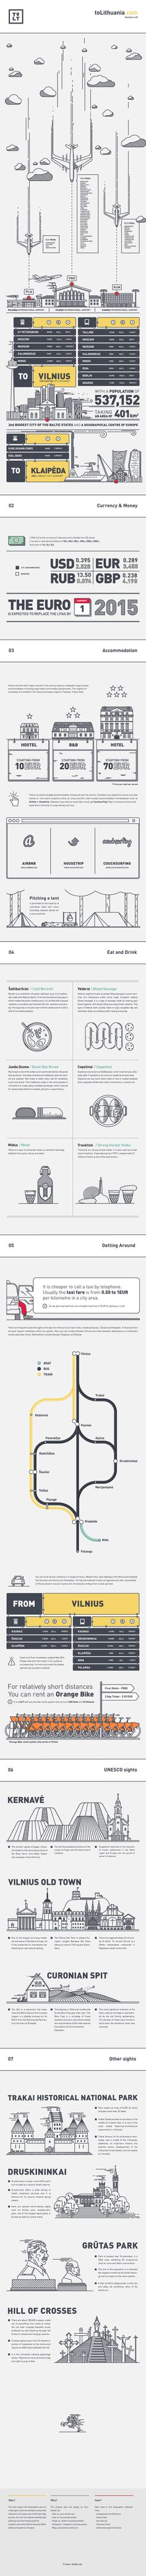 Go To Lithuania infographic